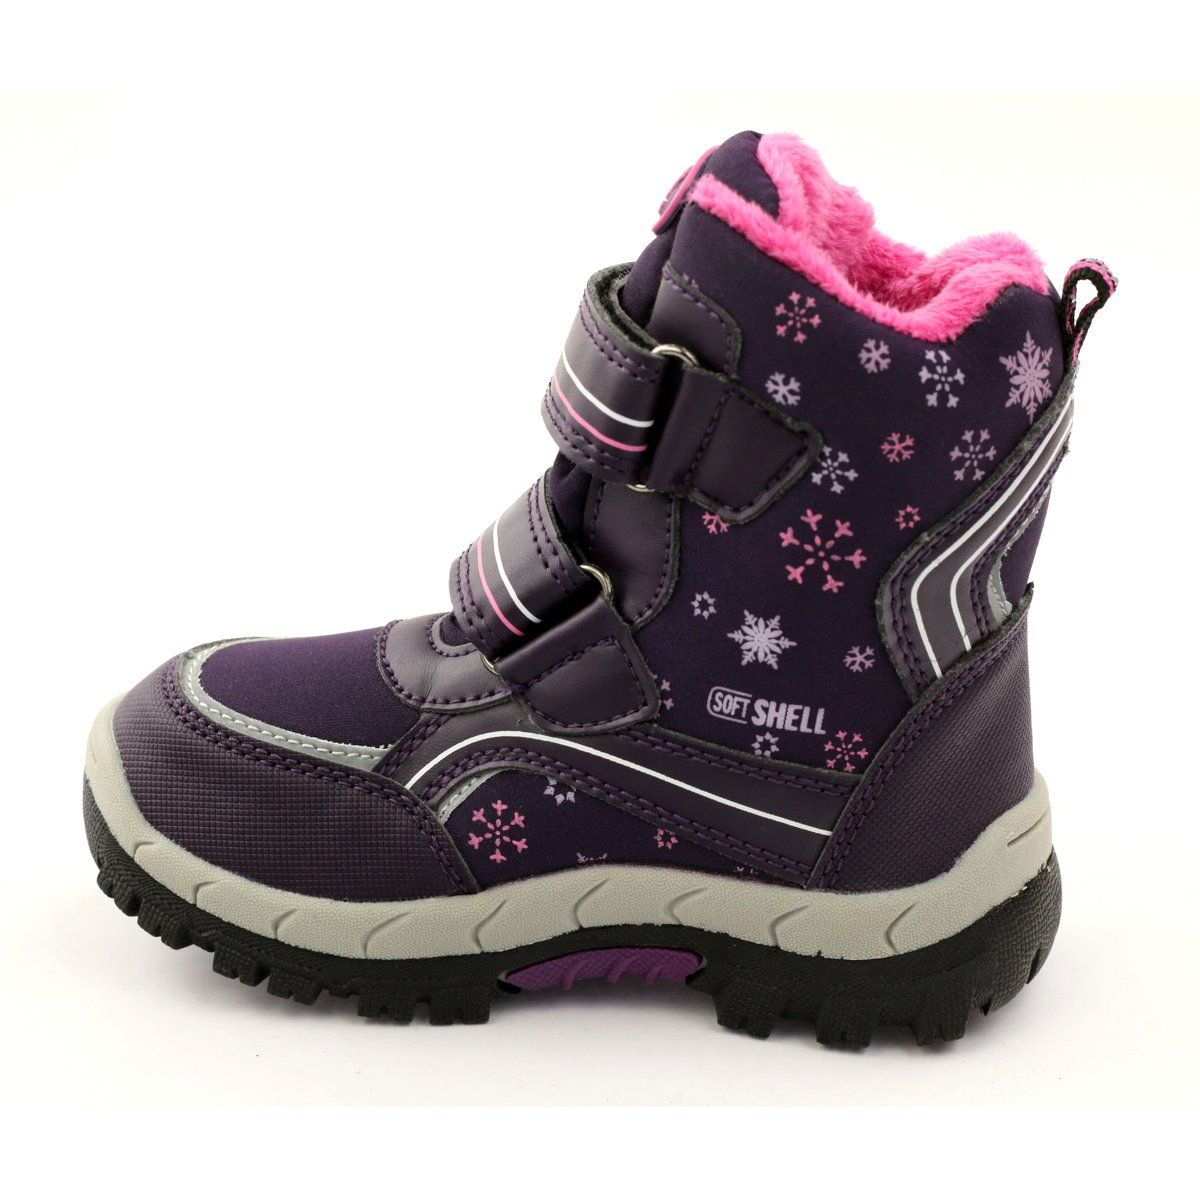 American Club Shoes With American 0305 Violet Membrane Pink Club Shoes Boots Childrens Boots